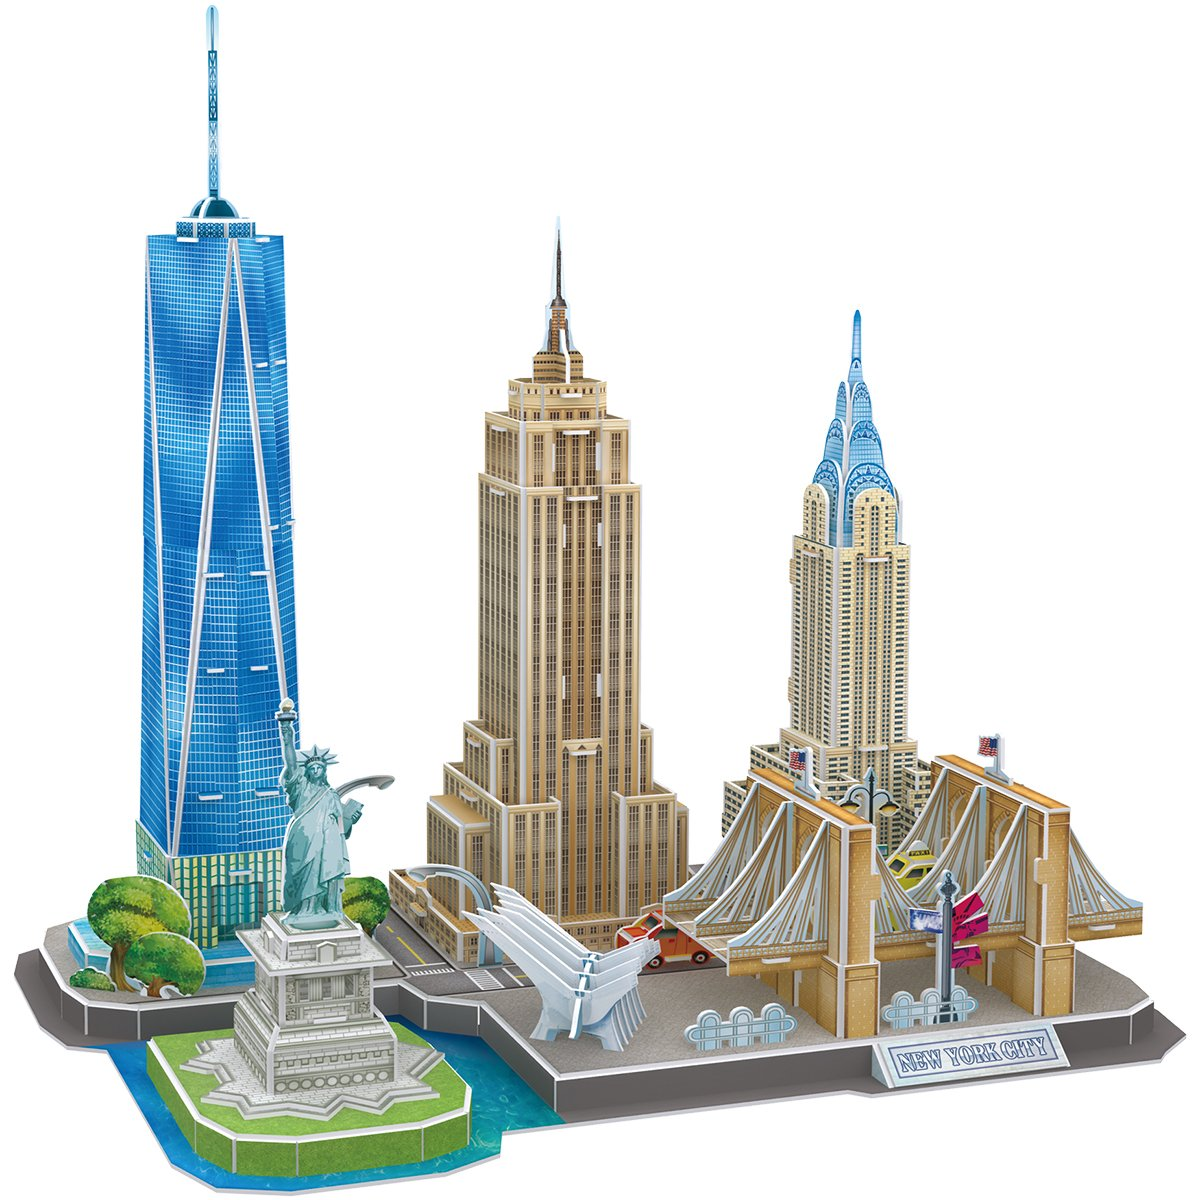 CubicFun 3D Puzzles Newyork Cityline Building Model Kits Collection Toys for Adults and Children, MC255h-0 by CubicFun